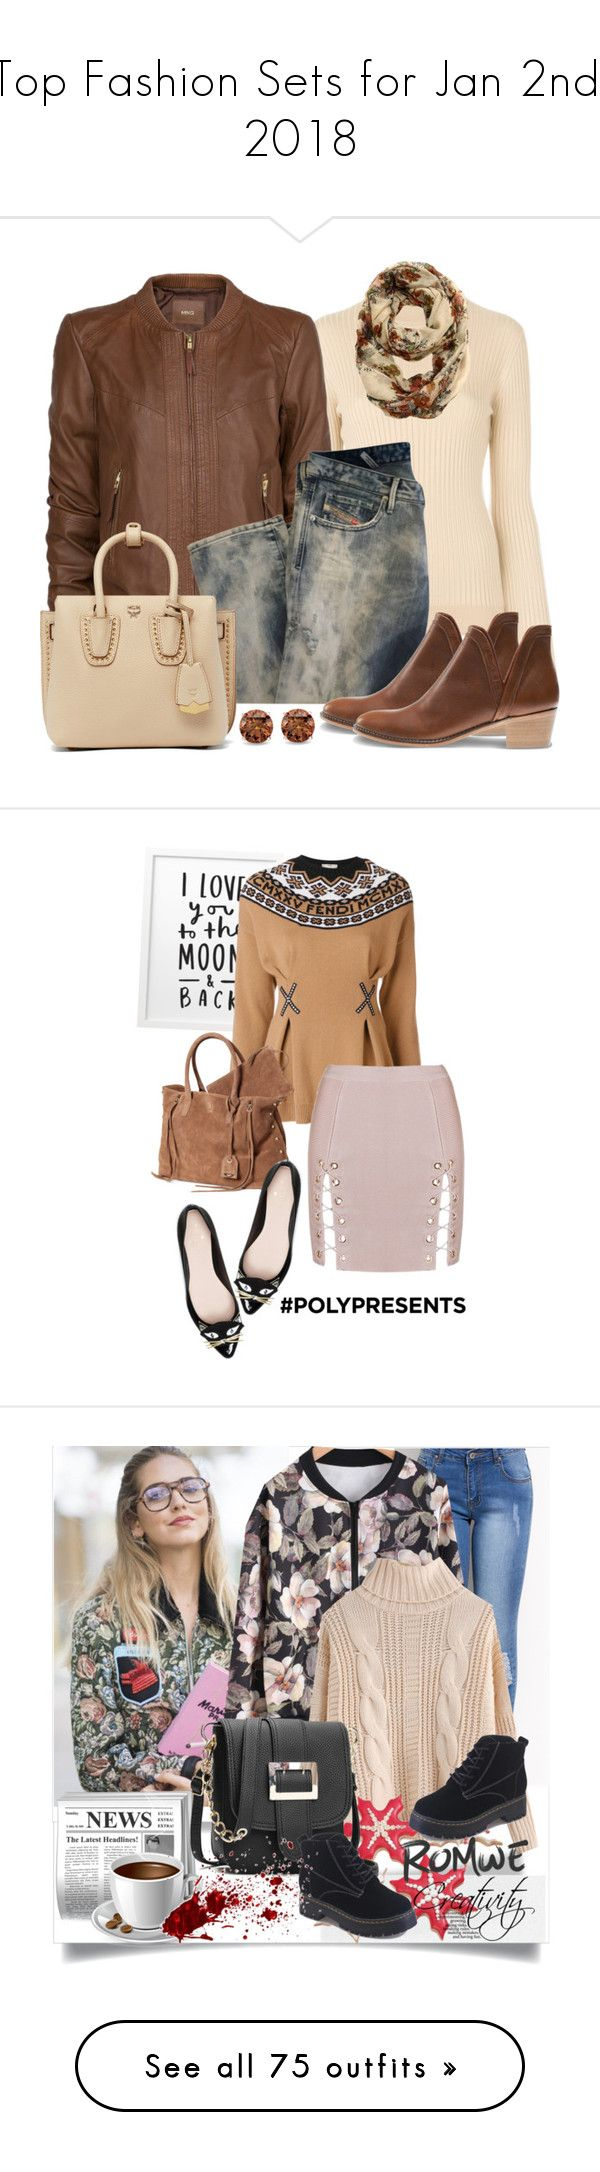 """""""Top Fashion Sets for Jan 2nd, 2018"""" by polyvore ❤ liked on Polyvore featuring Courrèges, MANGO, Diesel, MCM, Auriya, Kate Spade, Fendi, contestentry, polyPresents and romwe"""